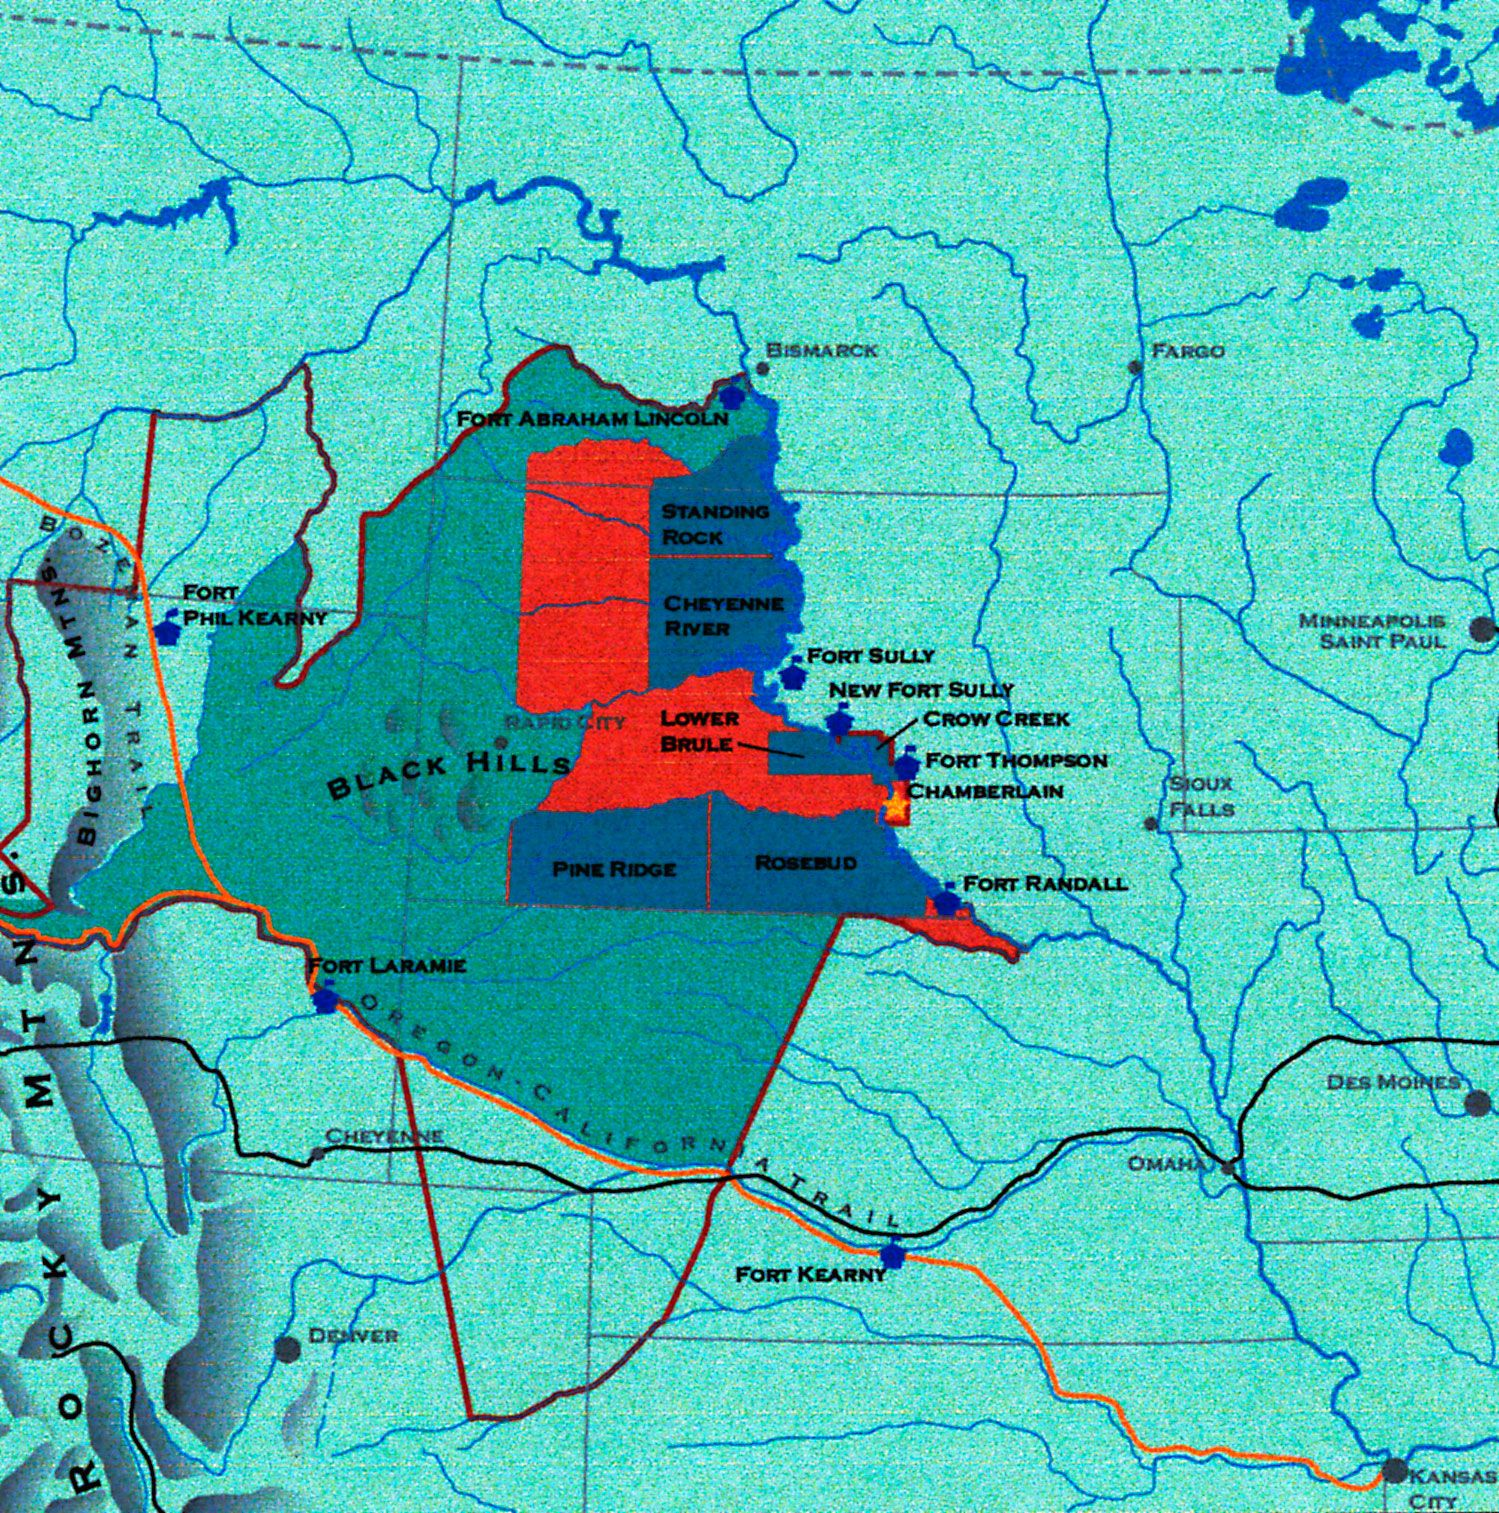 Dawes Act of 1887 - On February 8, 1887, Congress passed the Dawes Act, named for its author, Senator Henry Dawes of Massachusetts. Also known as the General Allotment Act, the law allowed for the President to break up reservation land, which was held in common by the members of a tribe, into small allotments to be parceled out to individuals. http://aktalakota.stjo.org/site/News2?page=NewsArticle&id=11499